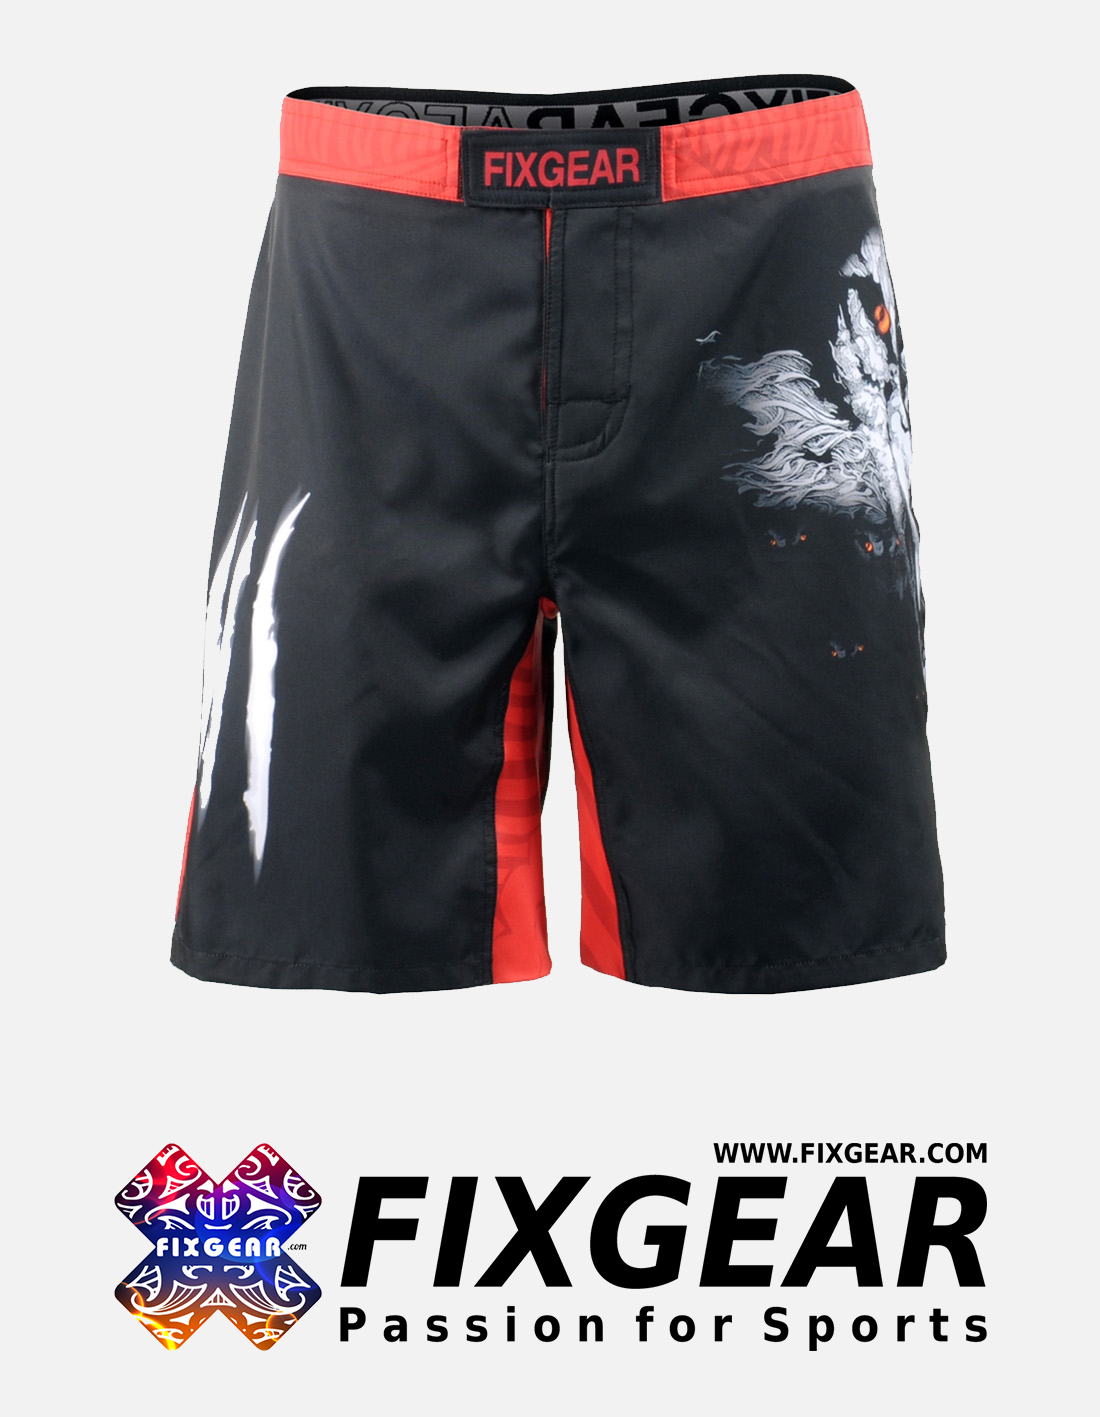 FIXGEAR FMS-18 Training Shorts